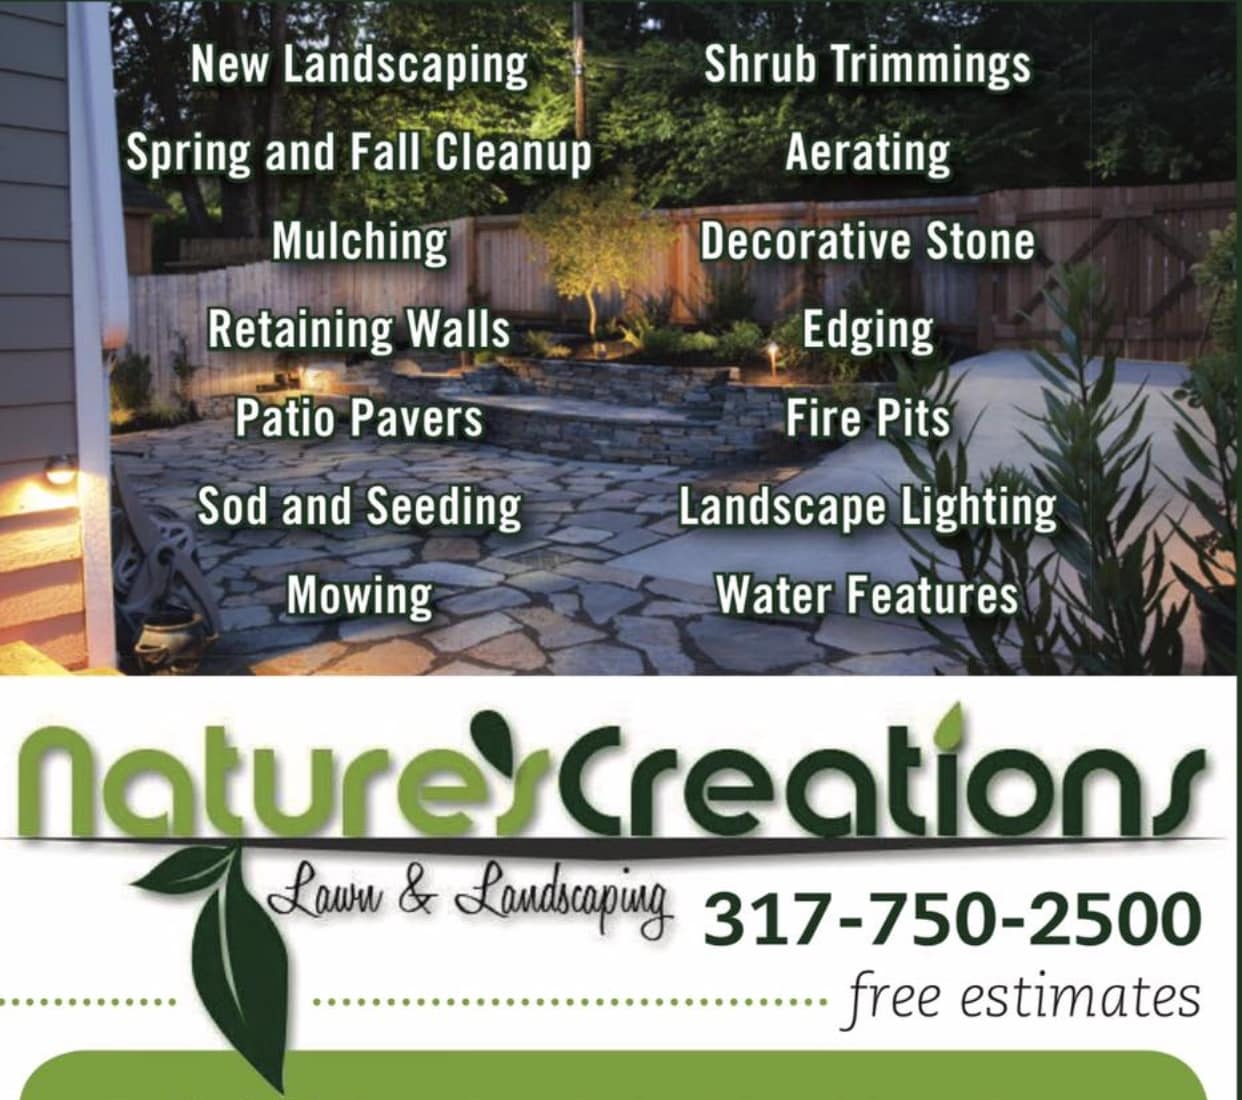 Nature's Creations Lawn & Landscaping